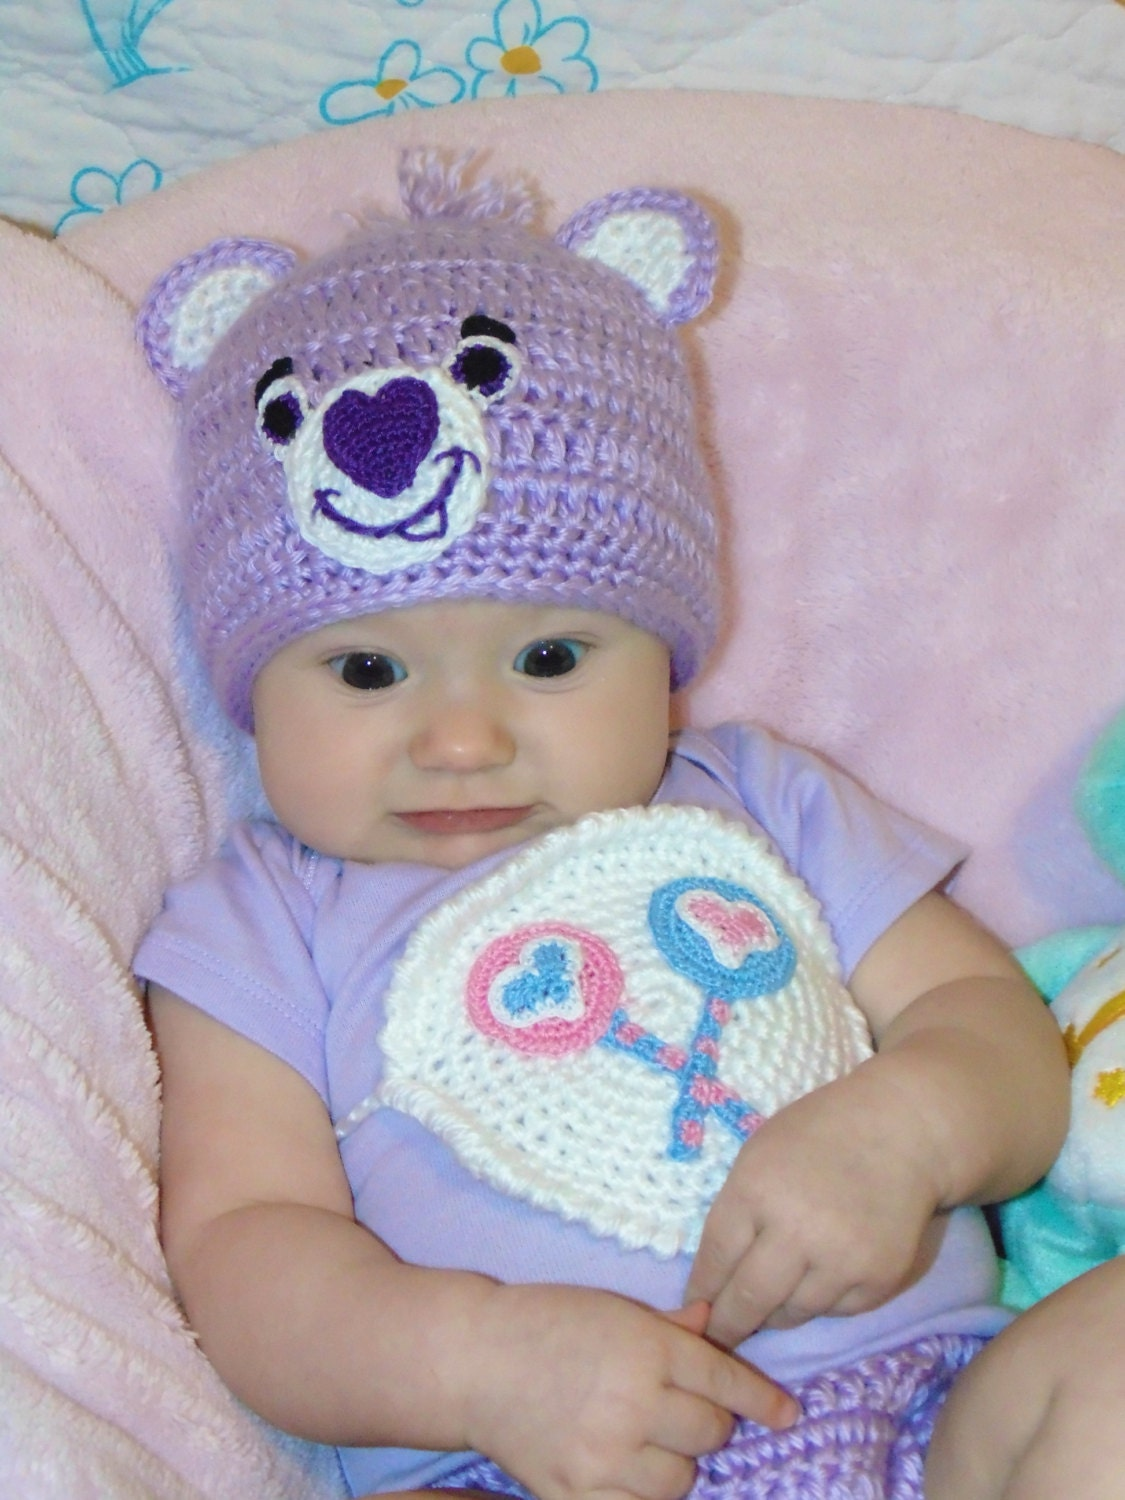 Crochet care bear hat pattern dancox for crochet purple care bear costume share bear or custom bankloansurffo Choice Image